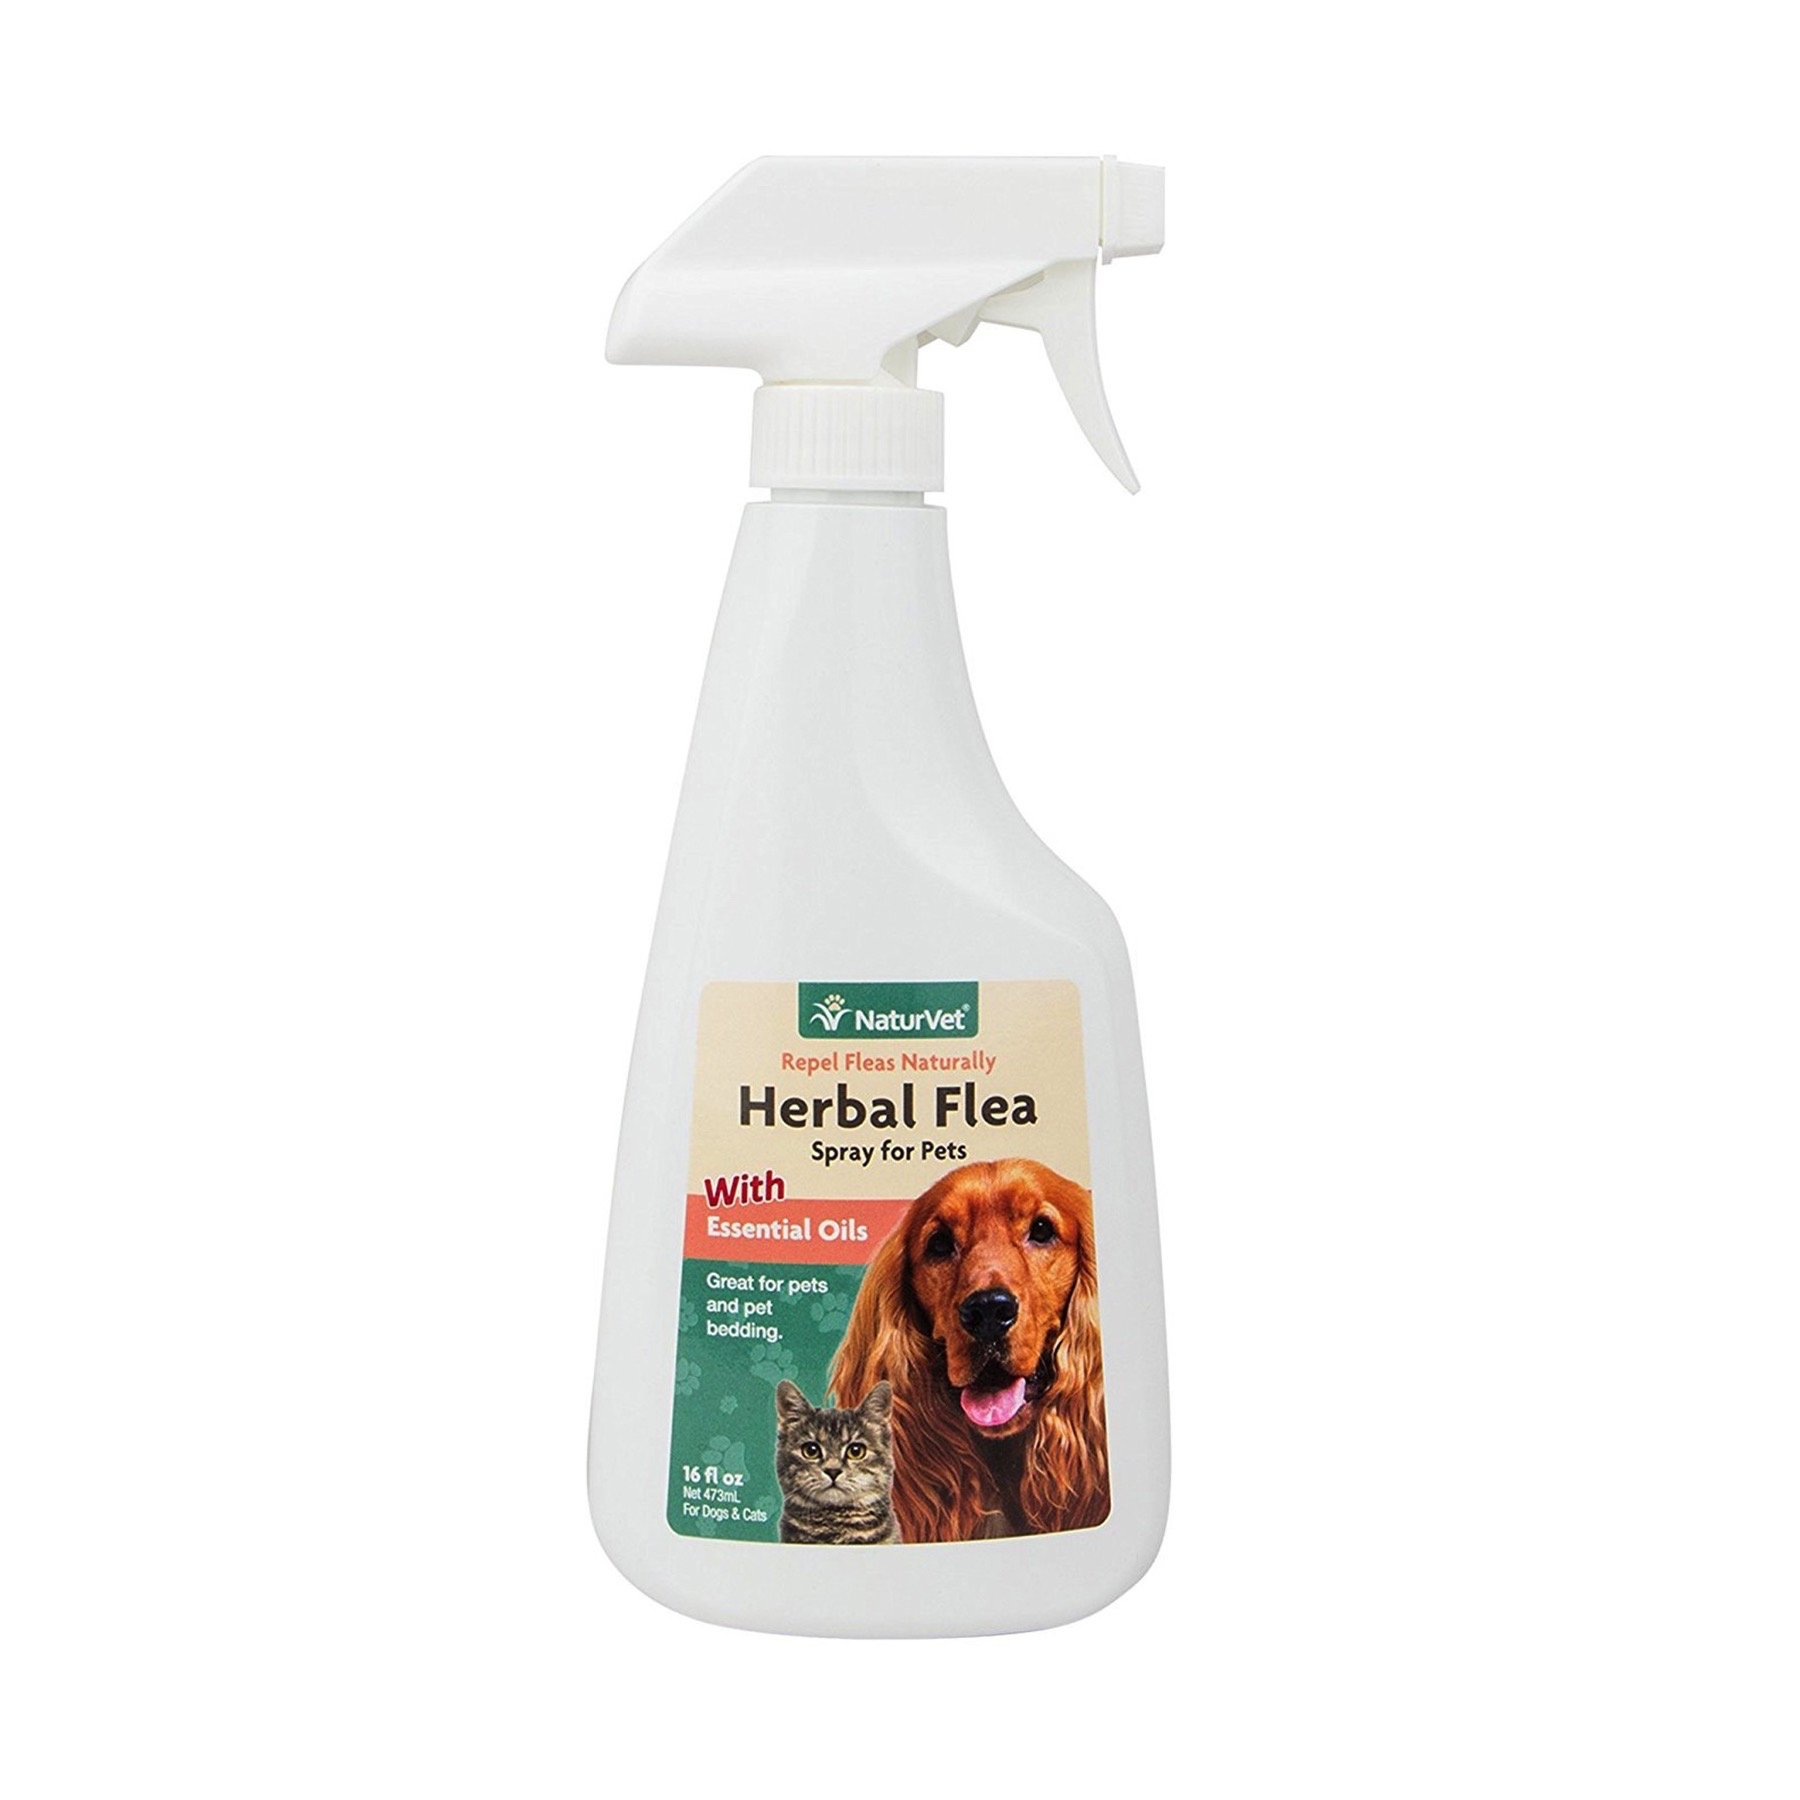 NaturVet Herbal Flea Spray with Essential Oils for Dogs and Cats, 16 oz Liquid, Made in USA